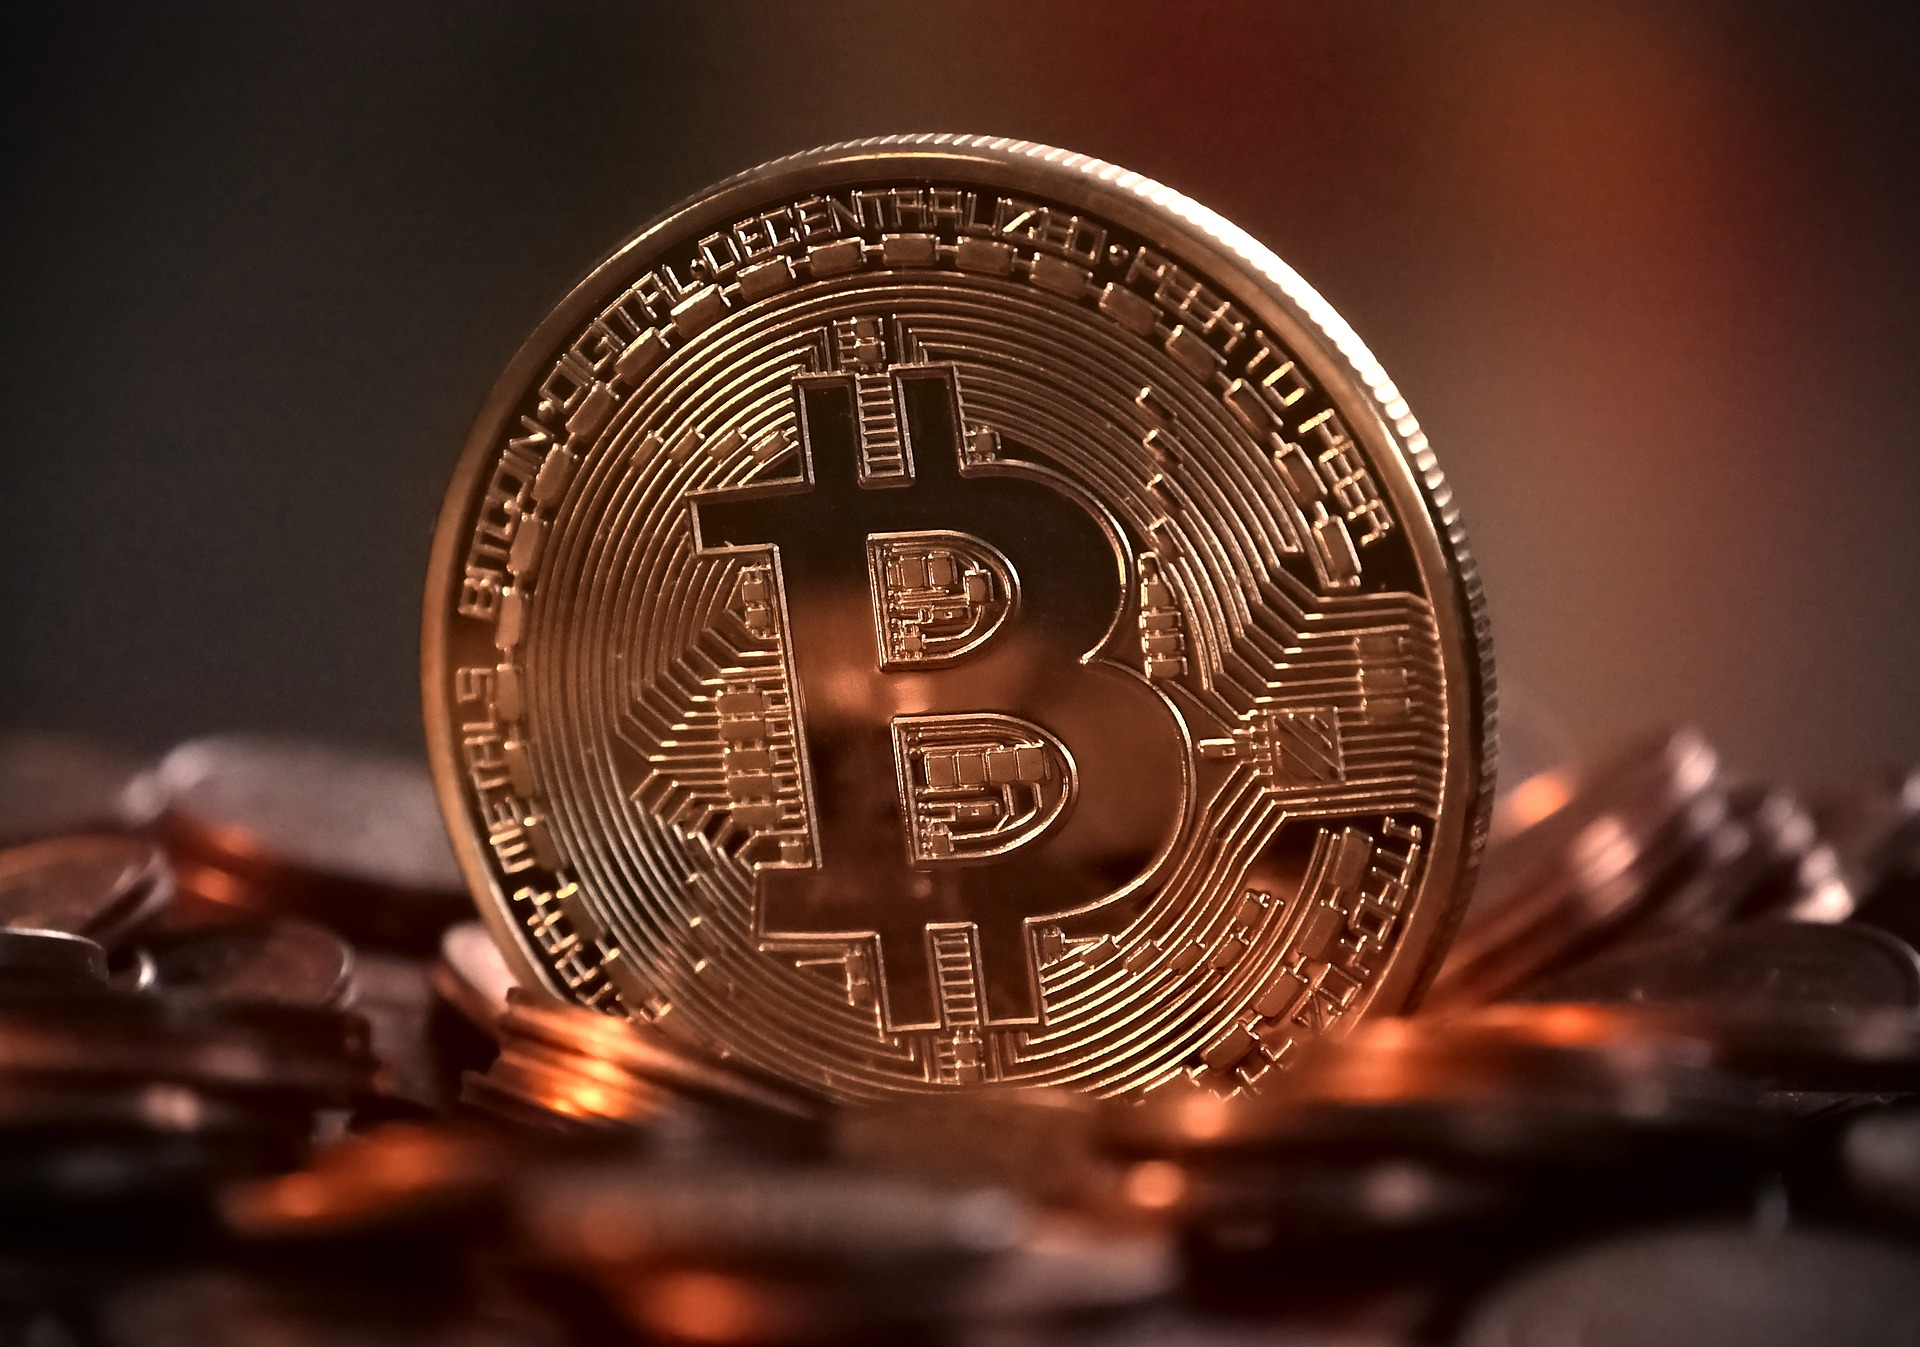 It will be difficult to ban Bitcoin says SEC